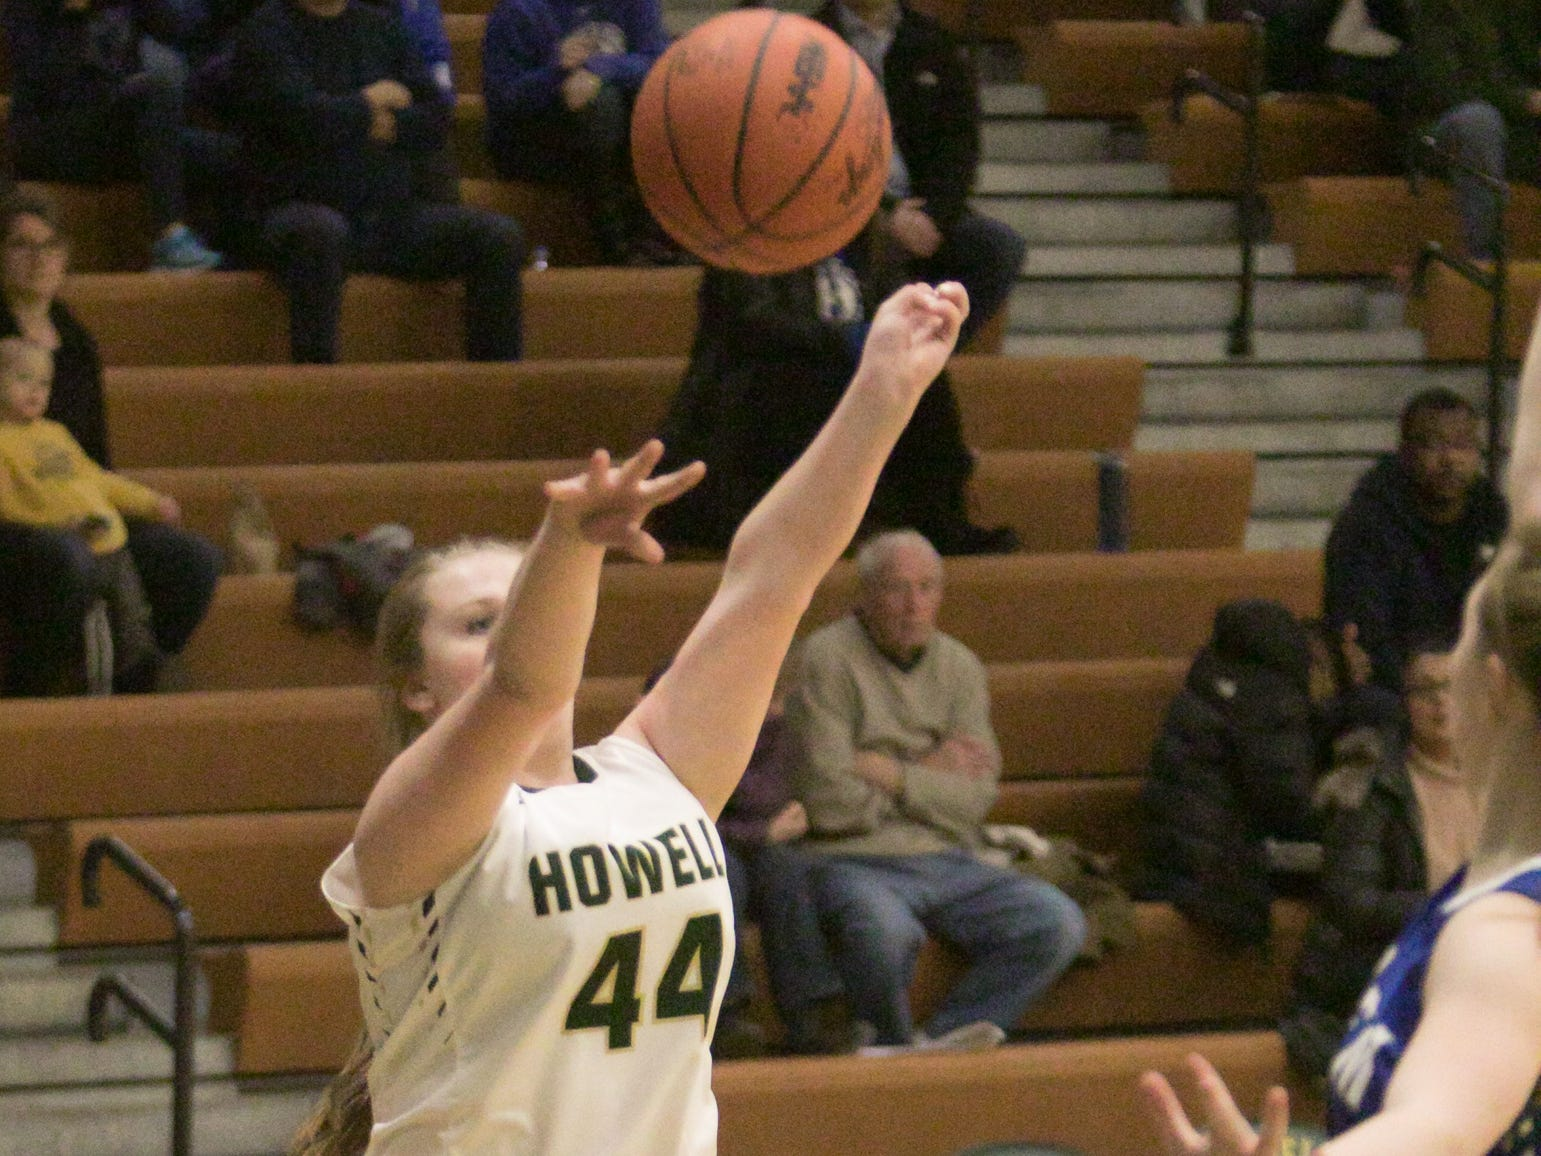 Avery Parrott of Howell shoots the basketball in a 48-17 victory over Salem on Tuesday, Feb. 5, 2019.